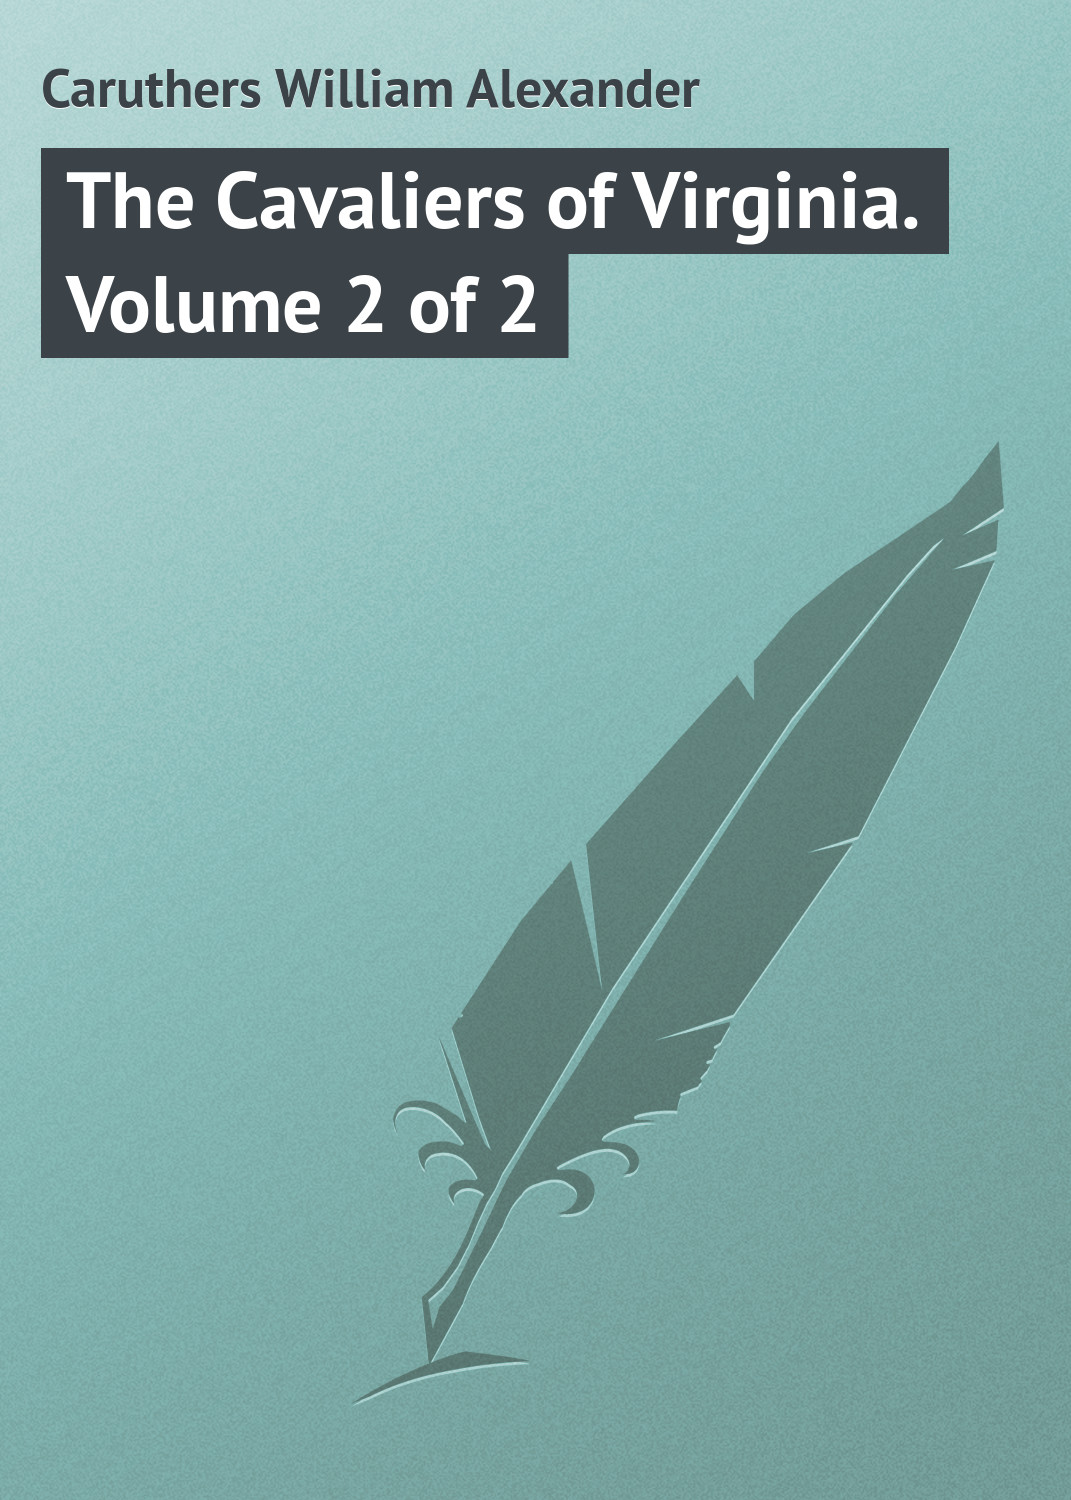 Caruthers William Alexander The Cavaliers of Virginia. Volume 2 of 2 earth 2 volume 2 the tower of fate